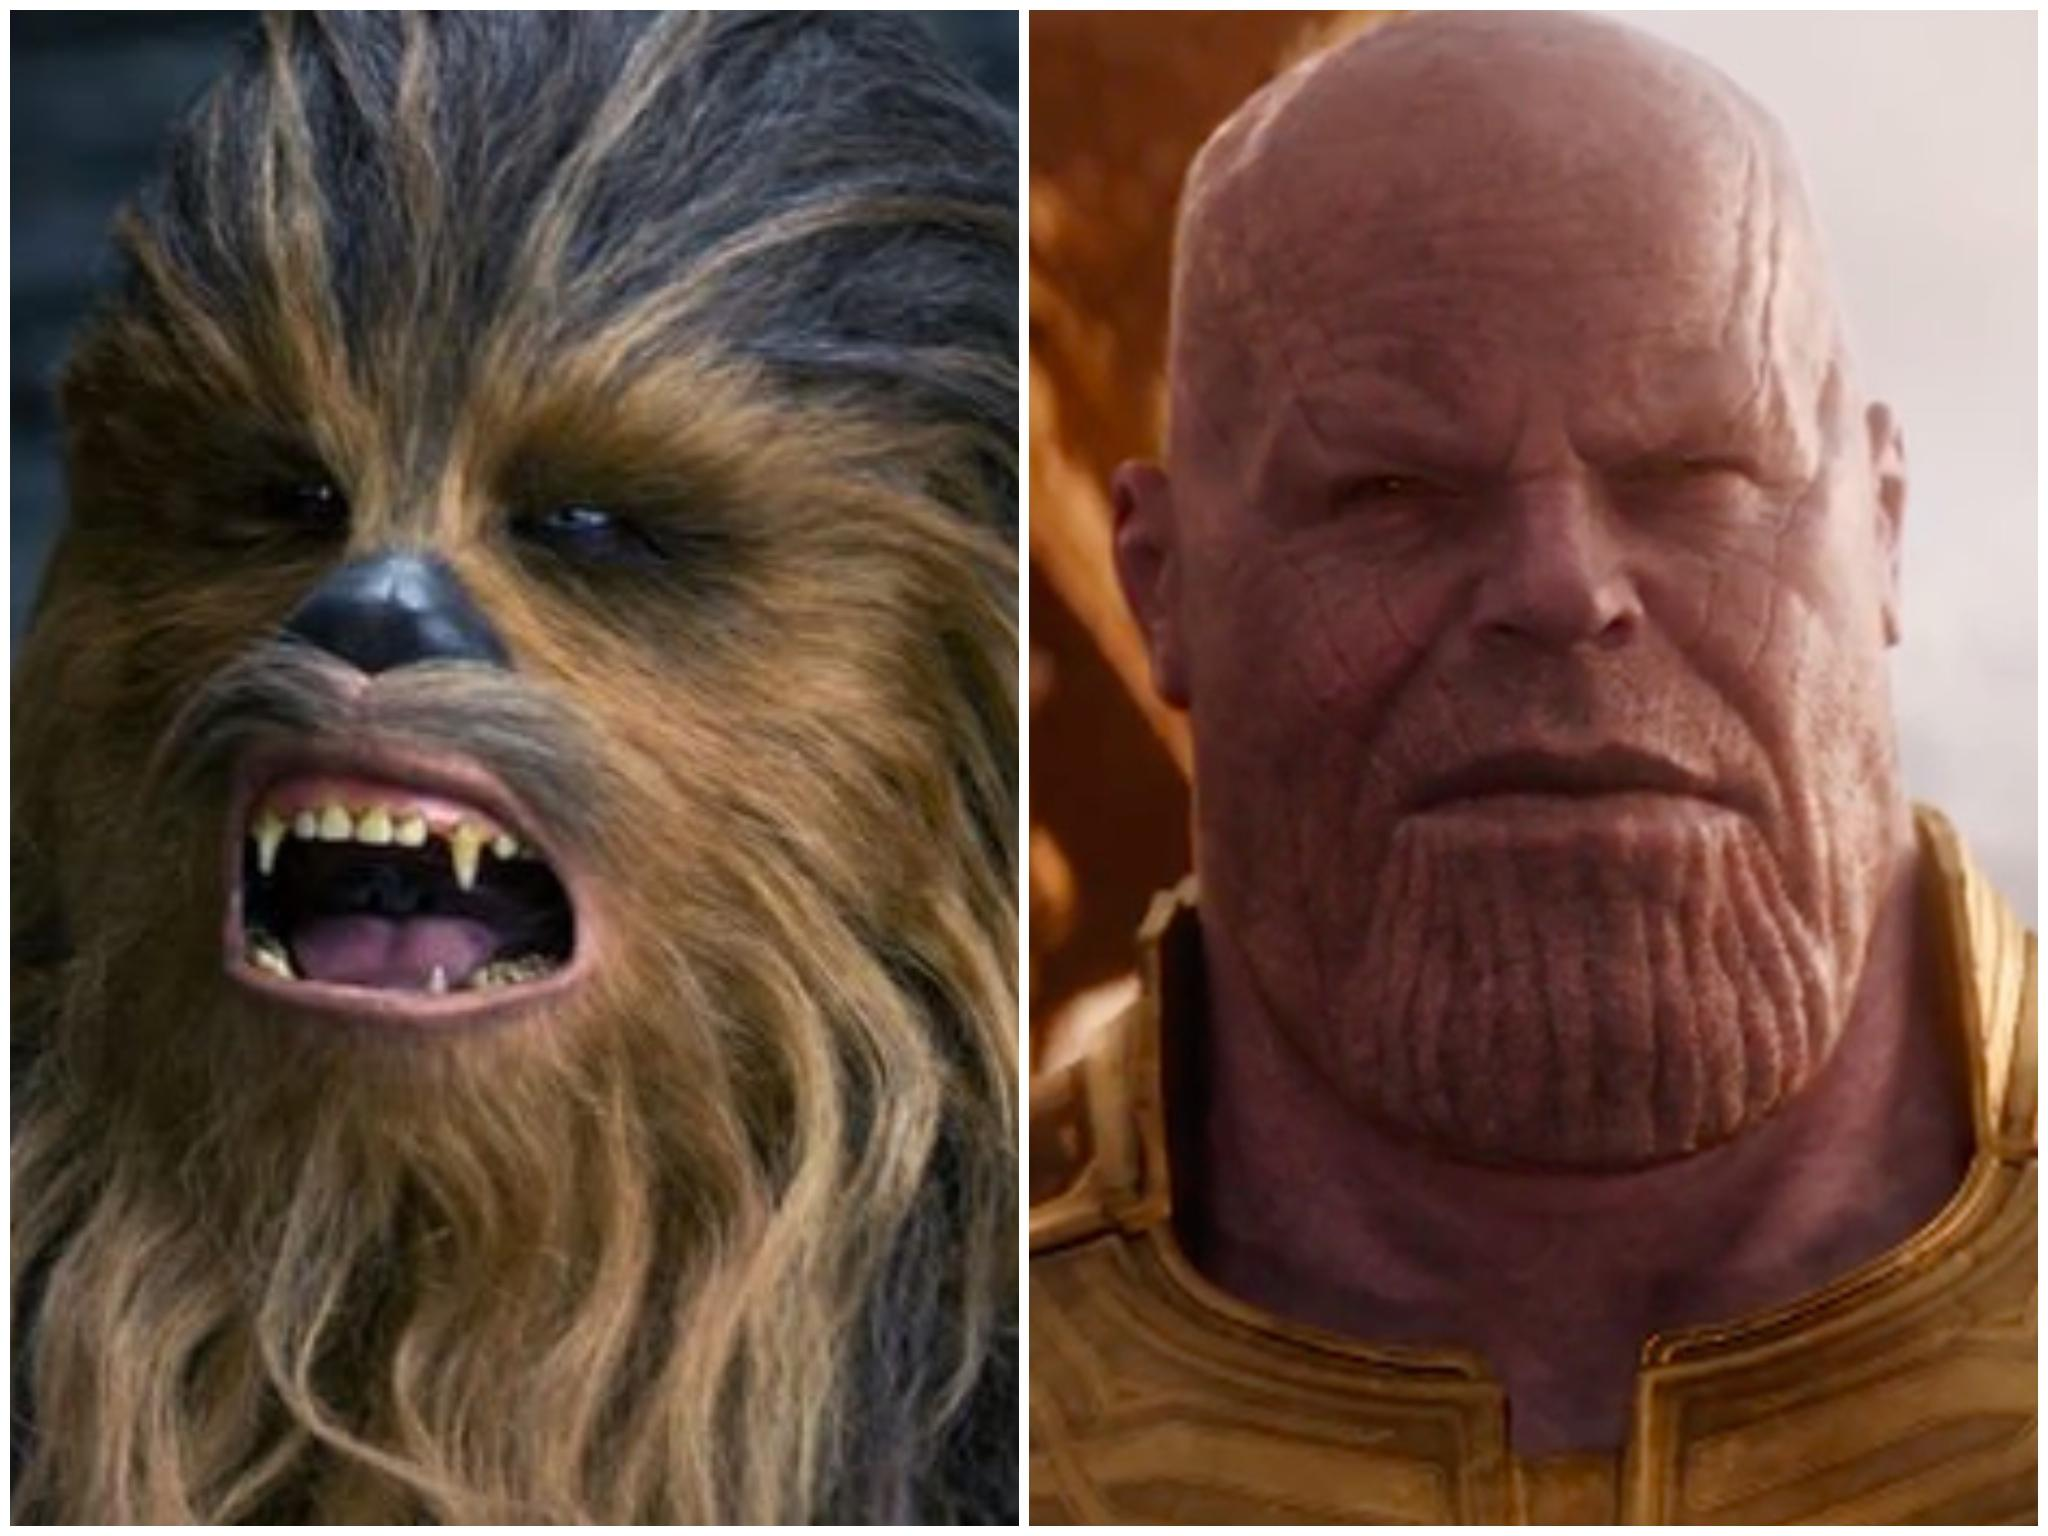 Star Wars v Avengers: Box office experts predict whether JJ Abrams' sequel can beat Endgame's record